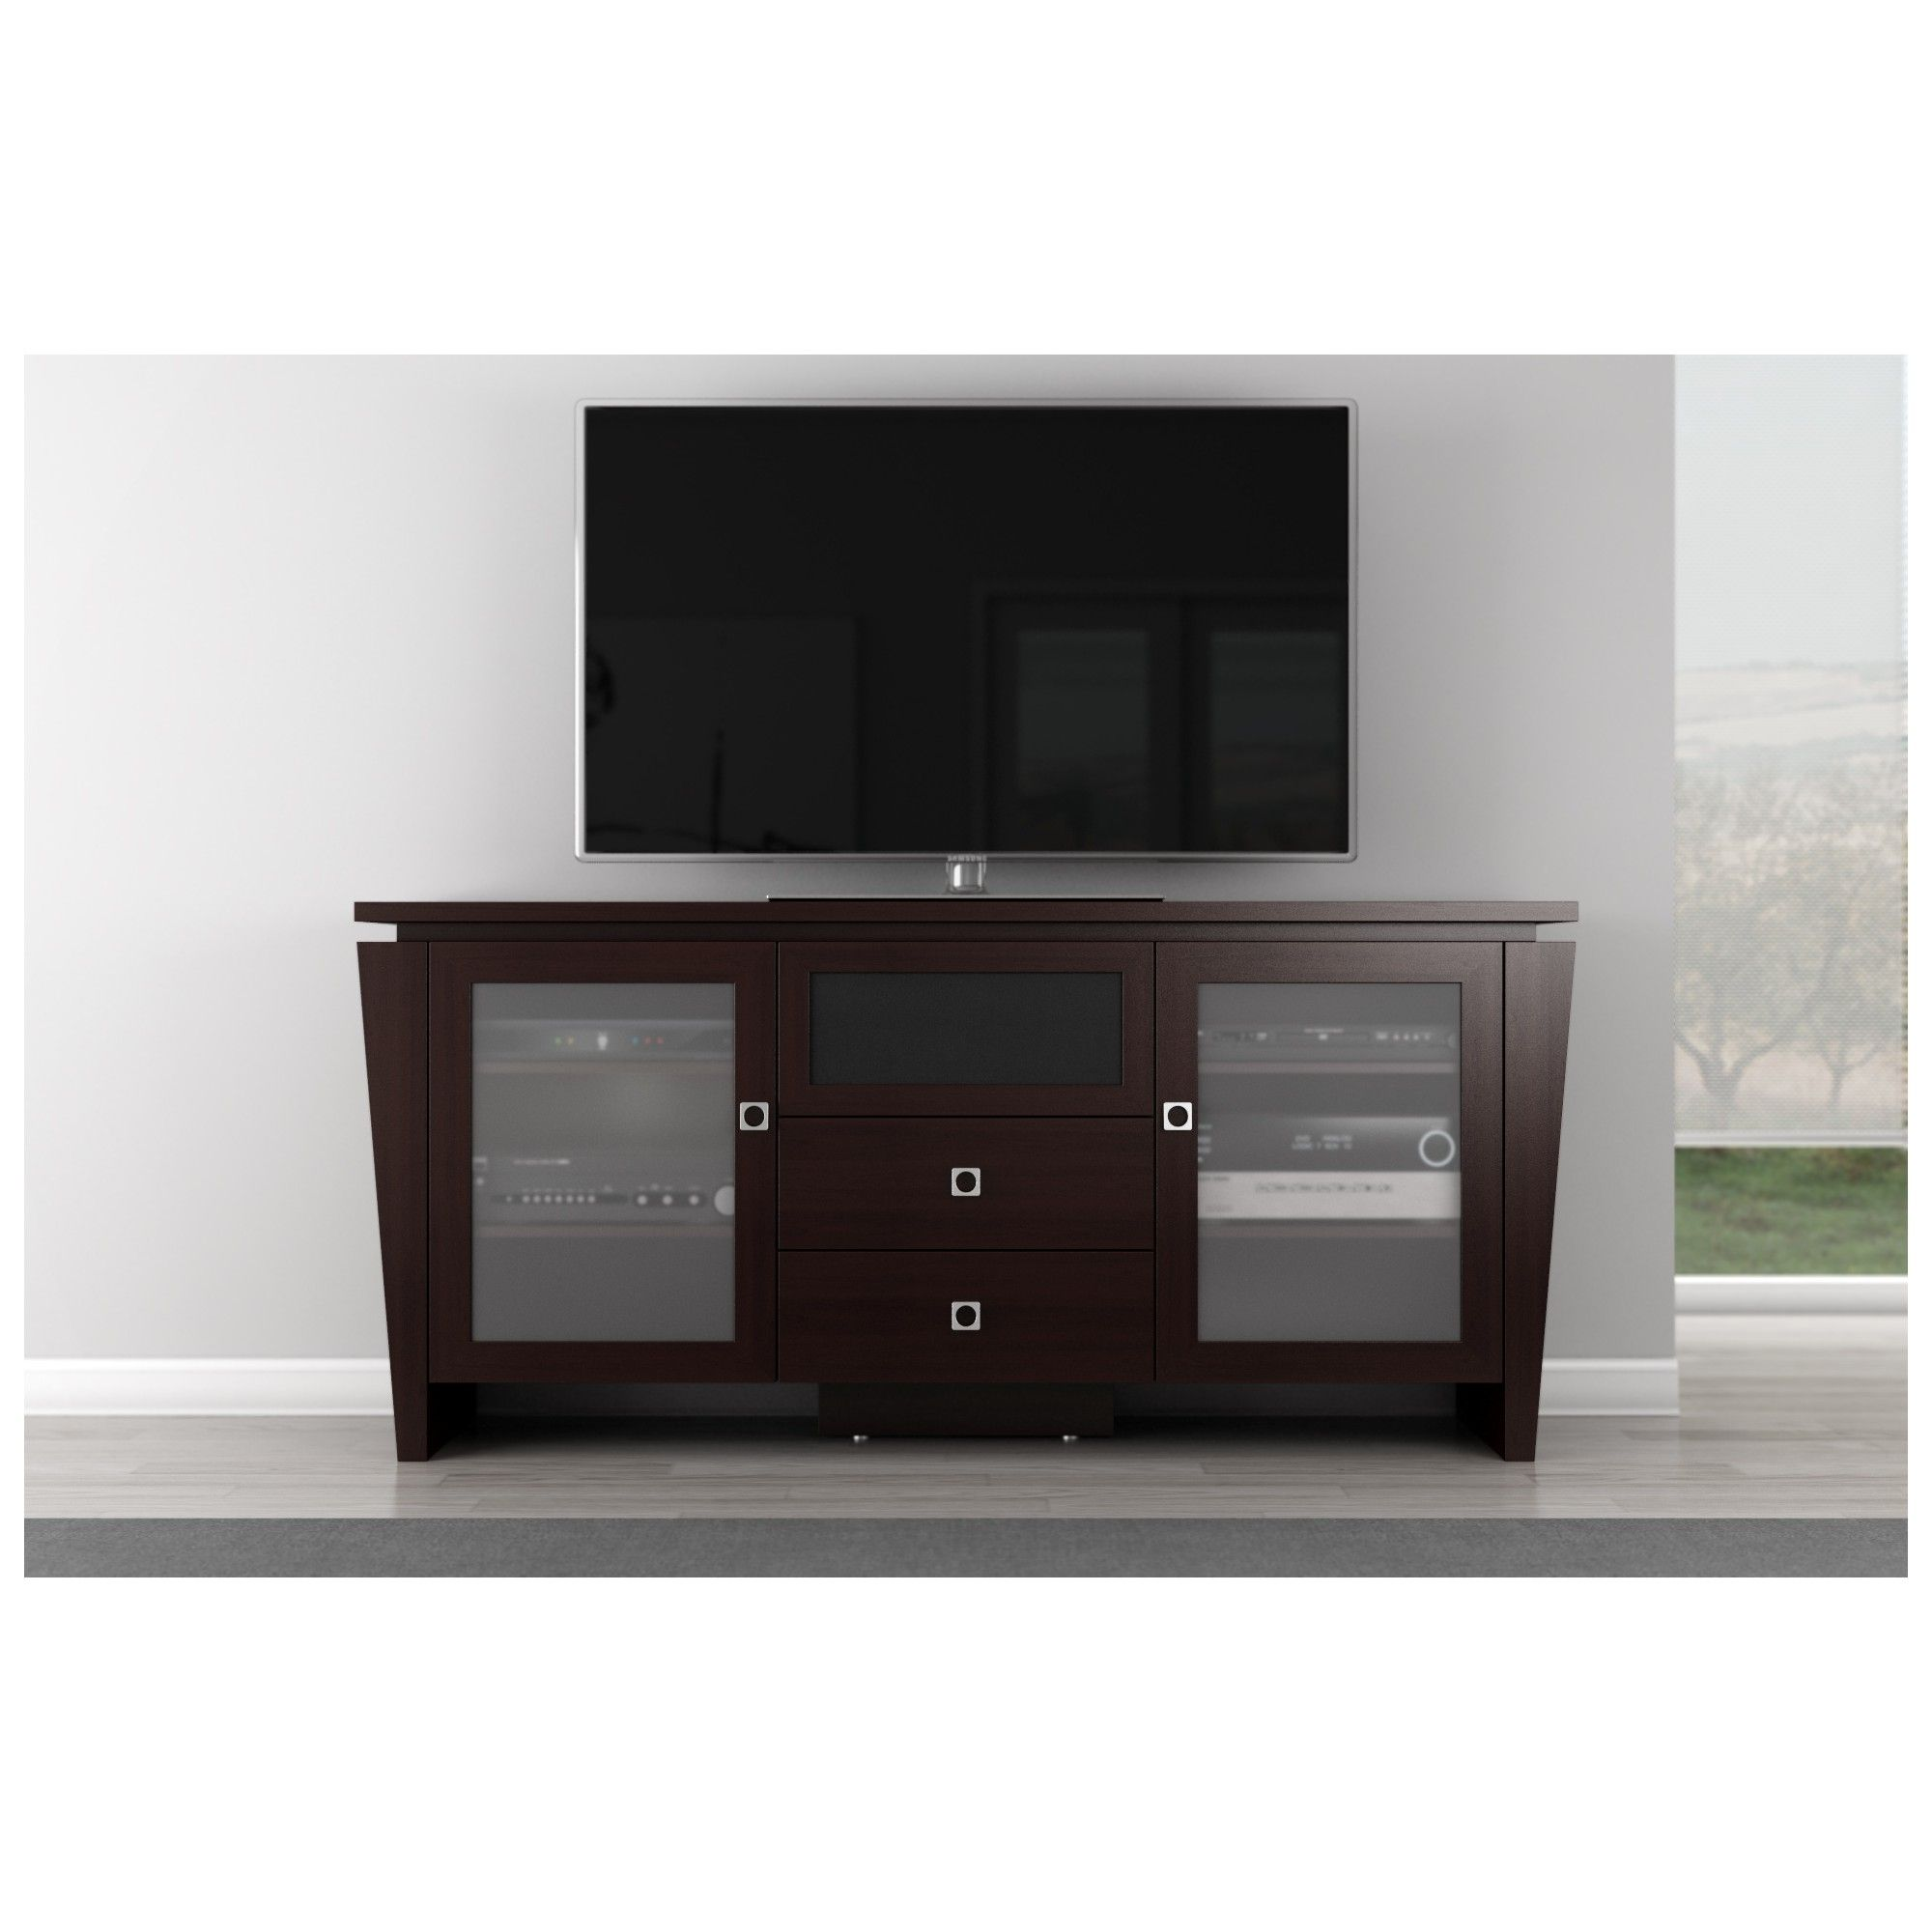 Furnitech 70 Tv Stand Modern Media Cabinet W Center Speaker  # Meuble Tv But Wenge